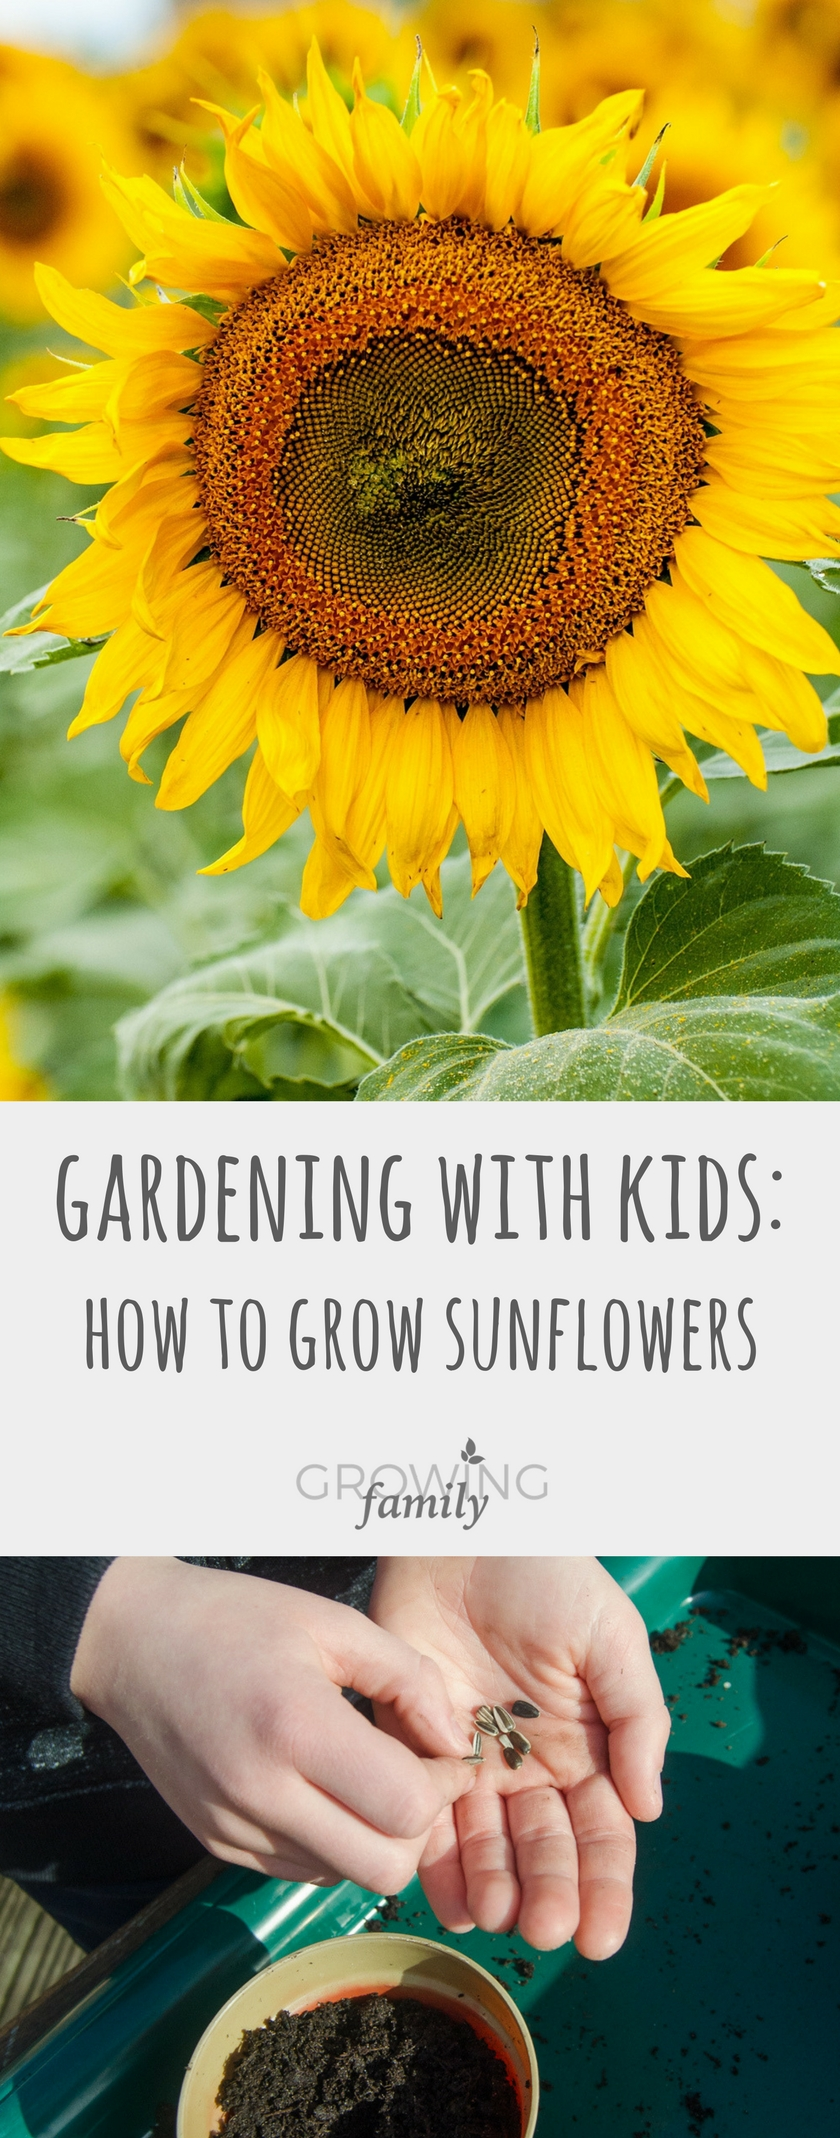 Growing sunflowers with children growing family for Growing families